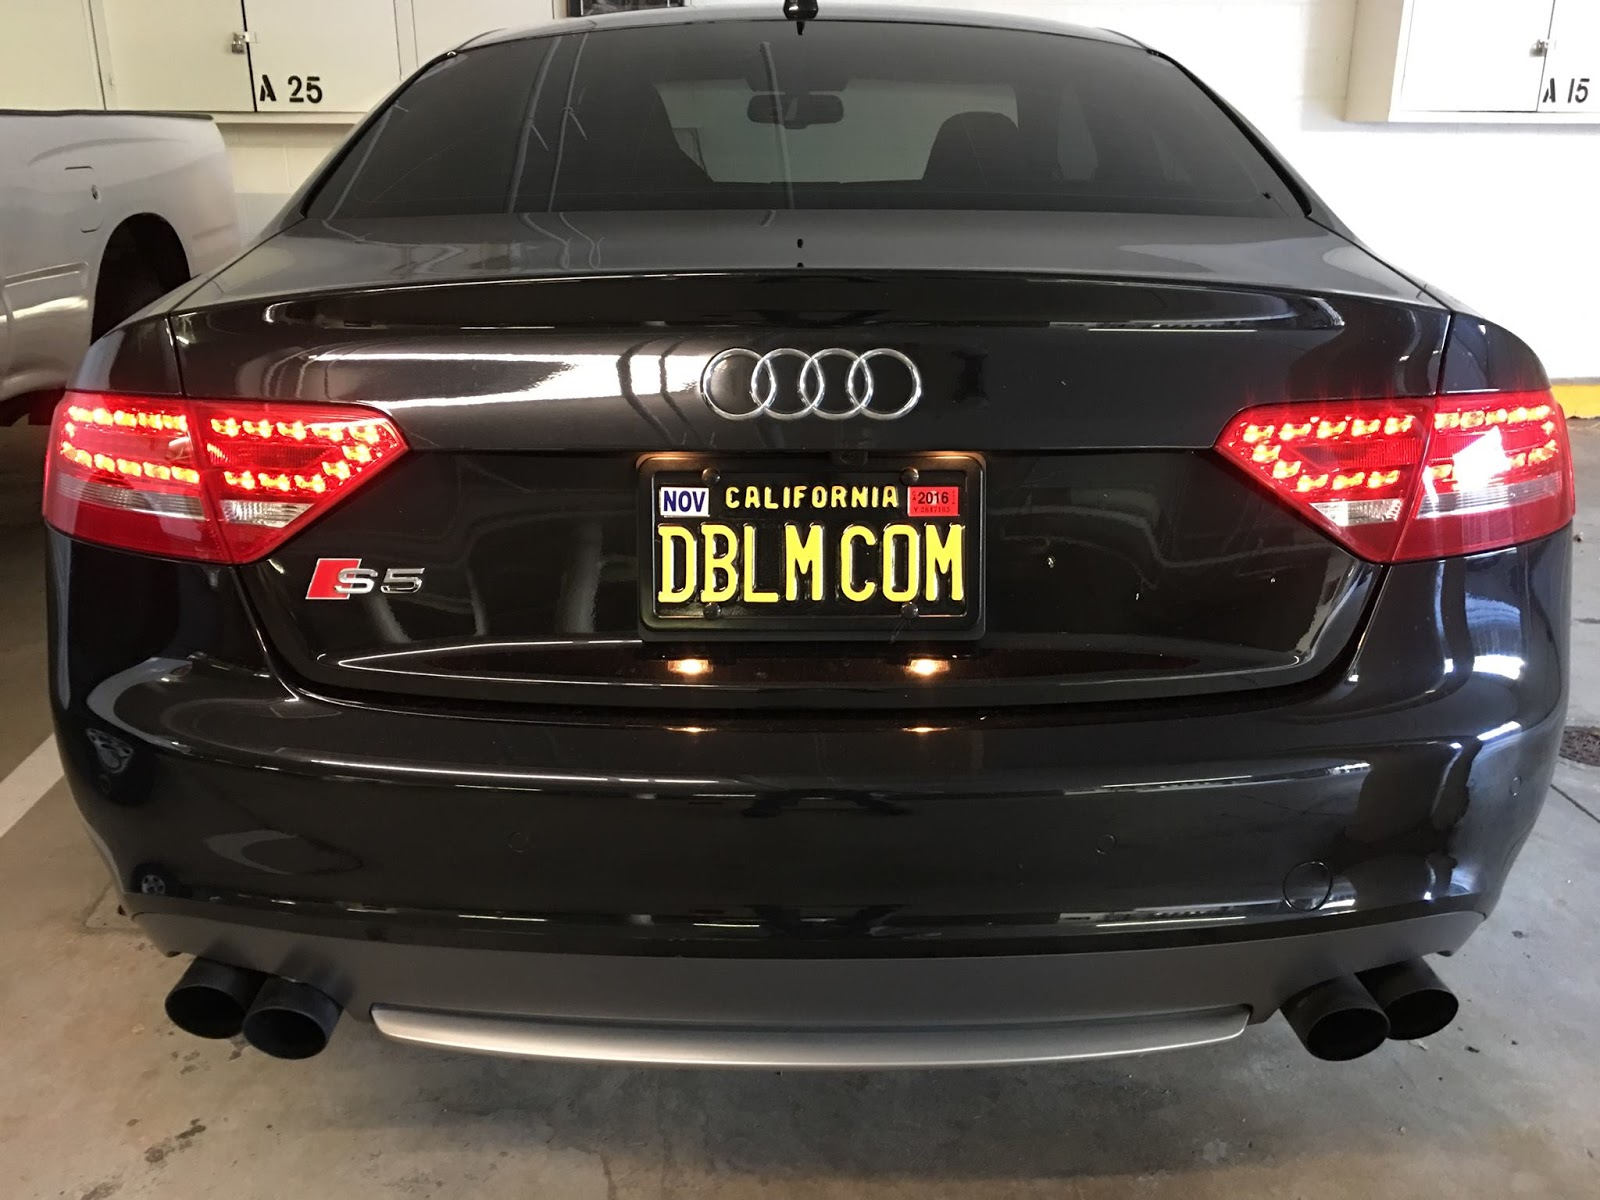 The Doublem Audi S5 New Legacy License Plate